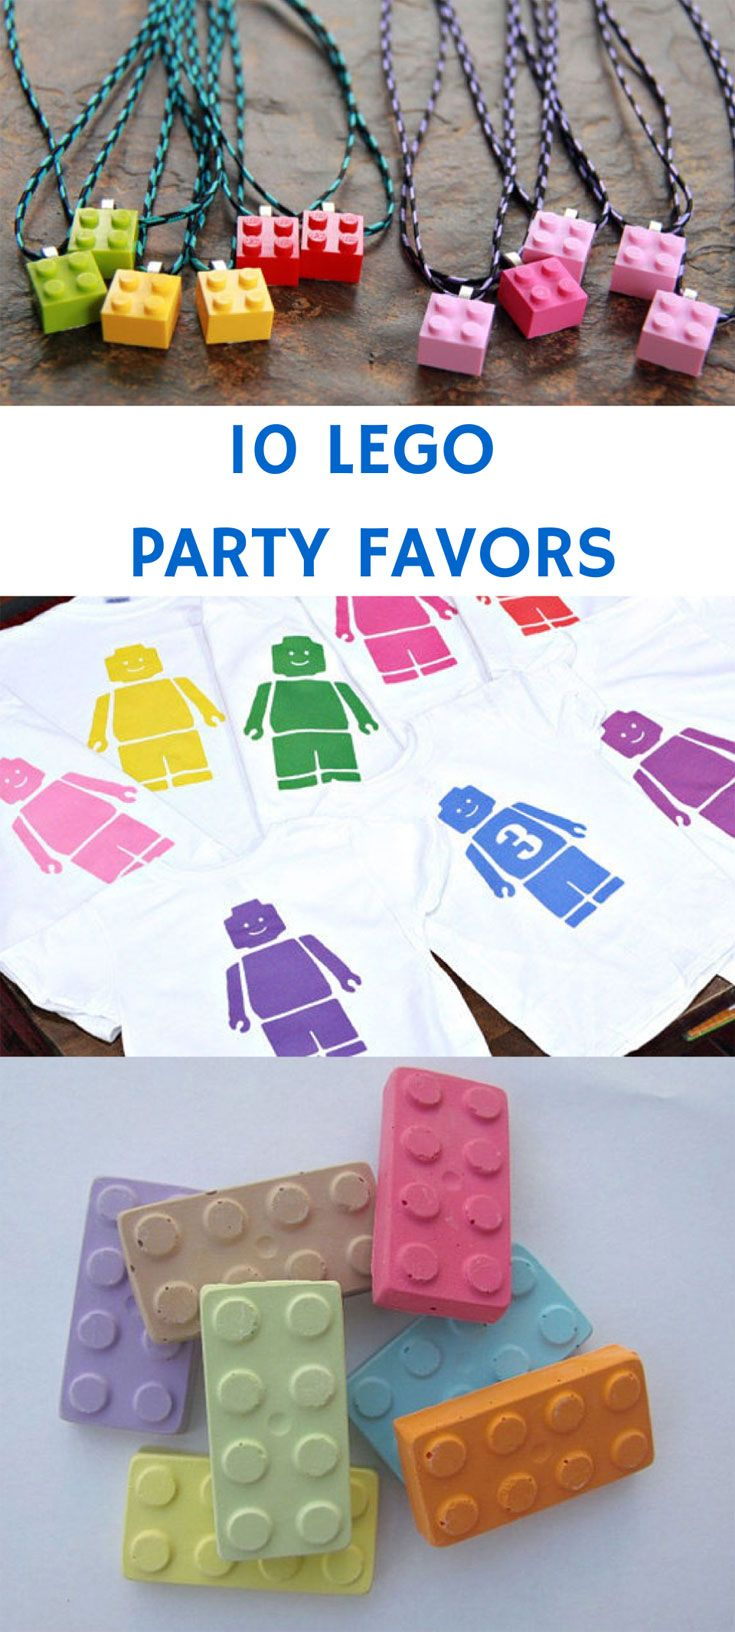 10 PARTY FAVOR IDEAS FOR KIDS LEGO PARTY ...